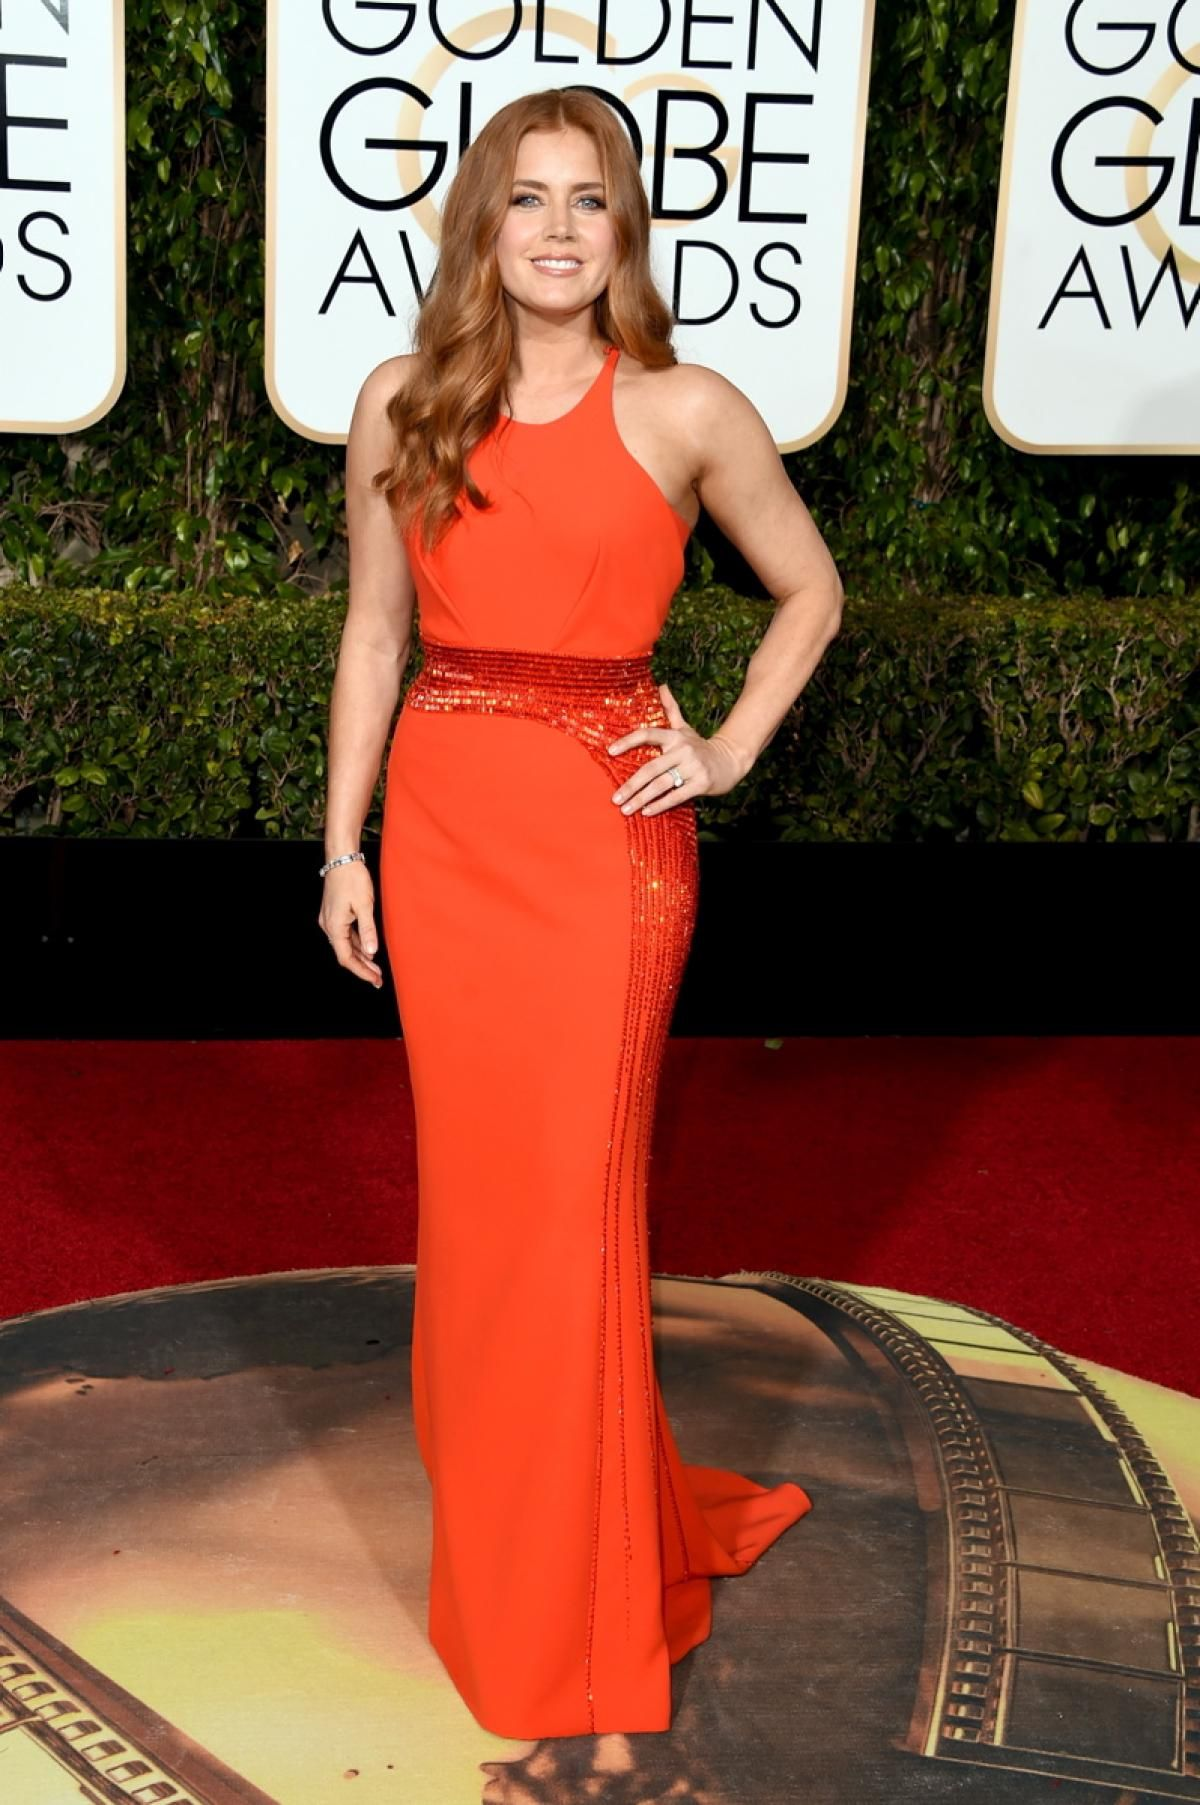 Actress Amy Adams struck a pose in a figure-hugging red Atelier Versace gown, embellished with beads that accentuate her waist at the 2016 Golden Globes on Jan. 10, 2016.